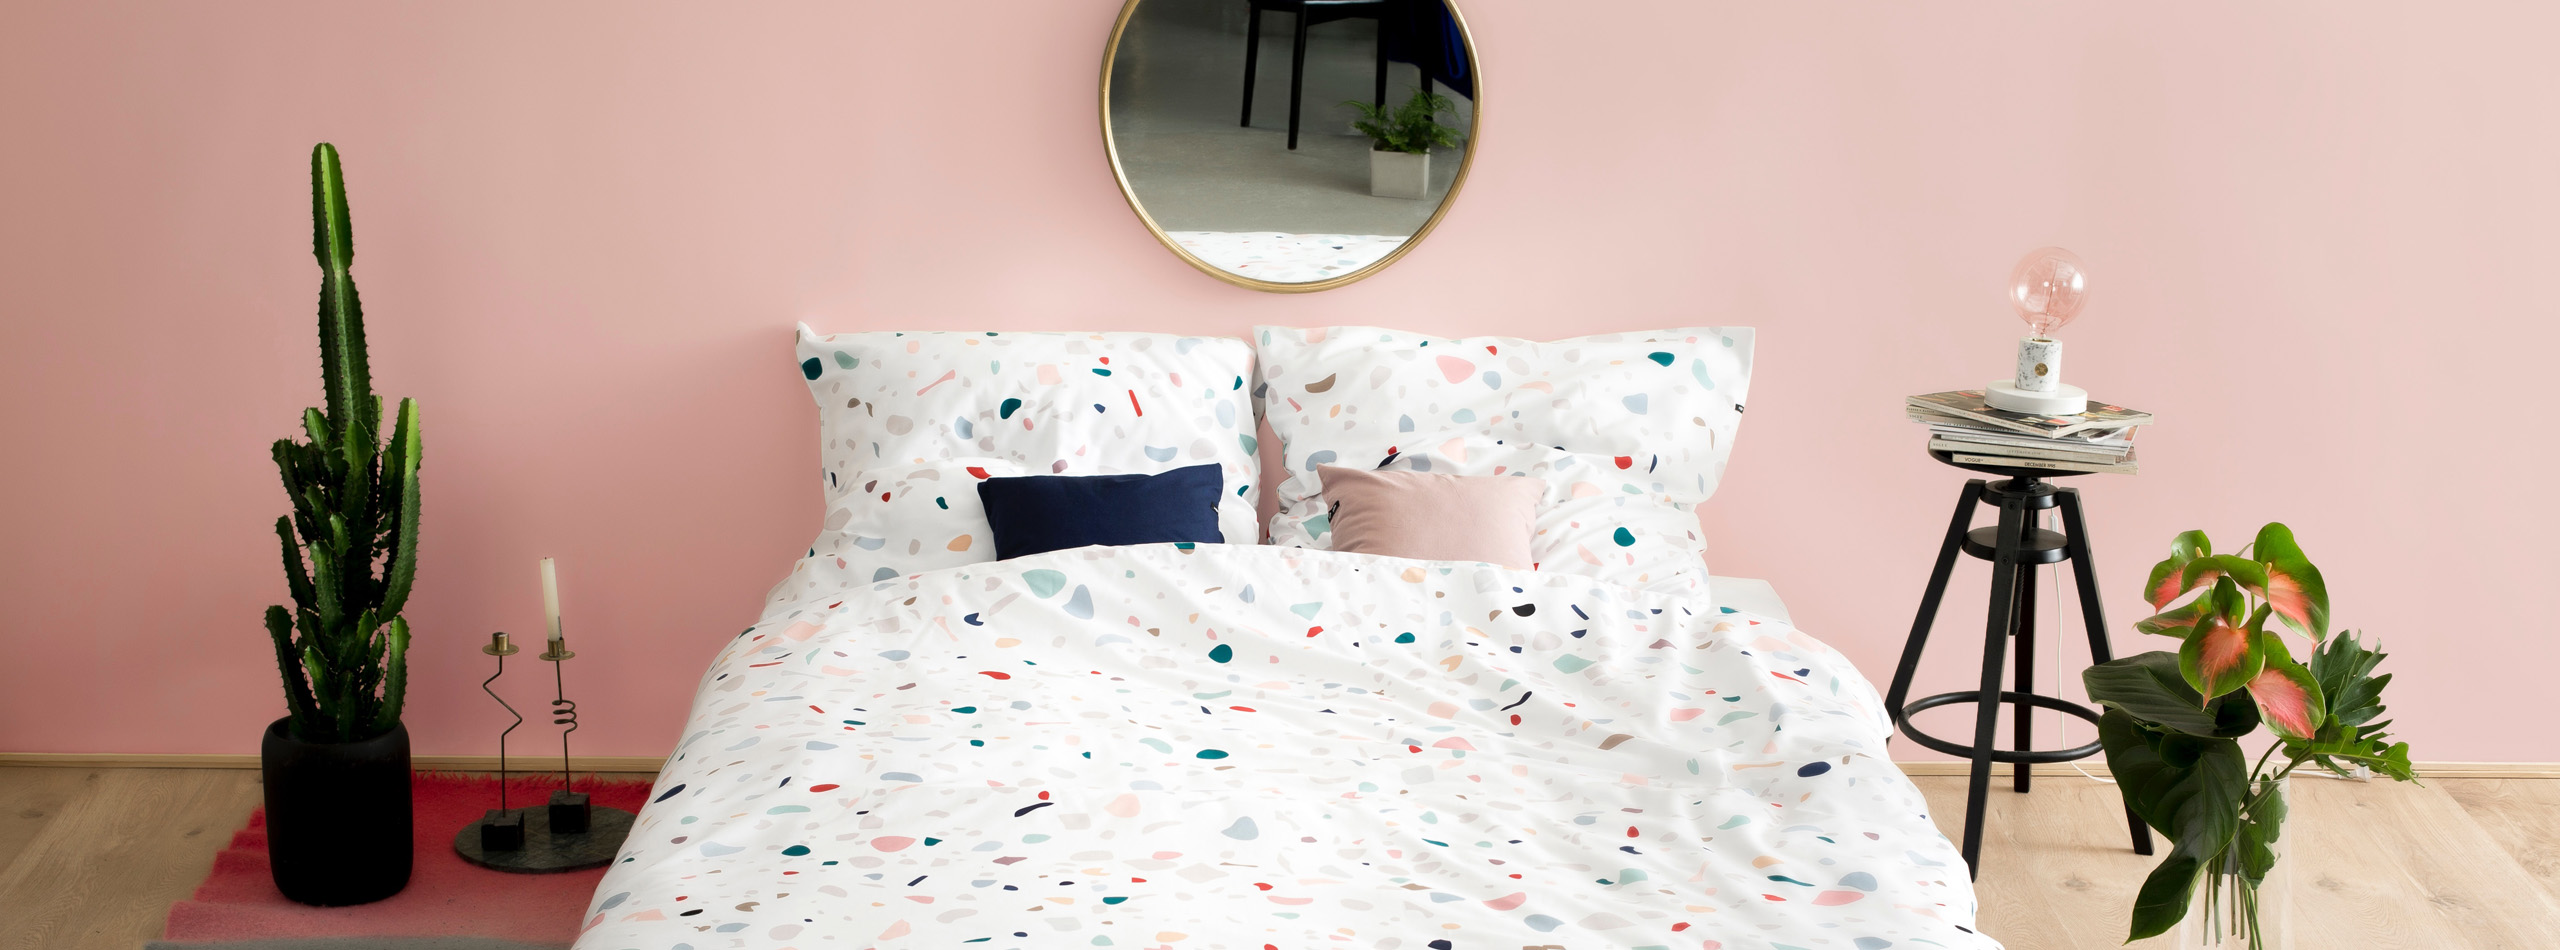 Picture of a bed with custom printed duvet covers